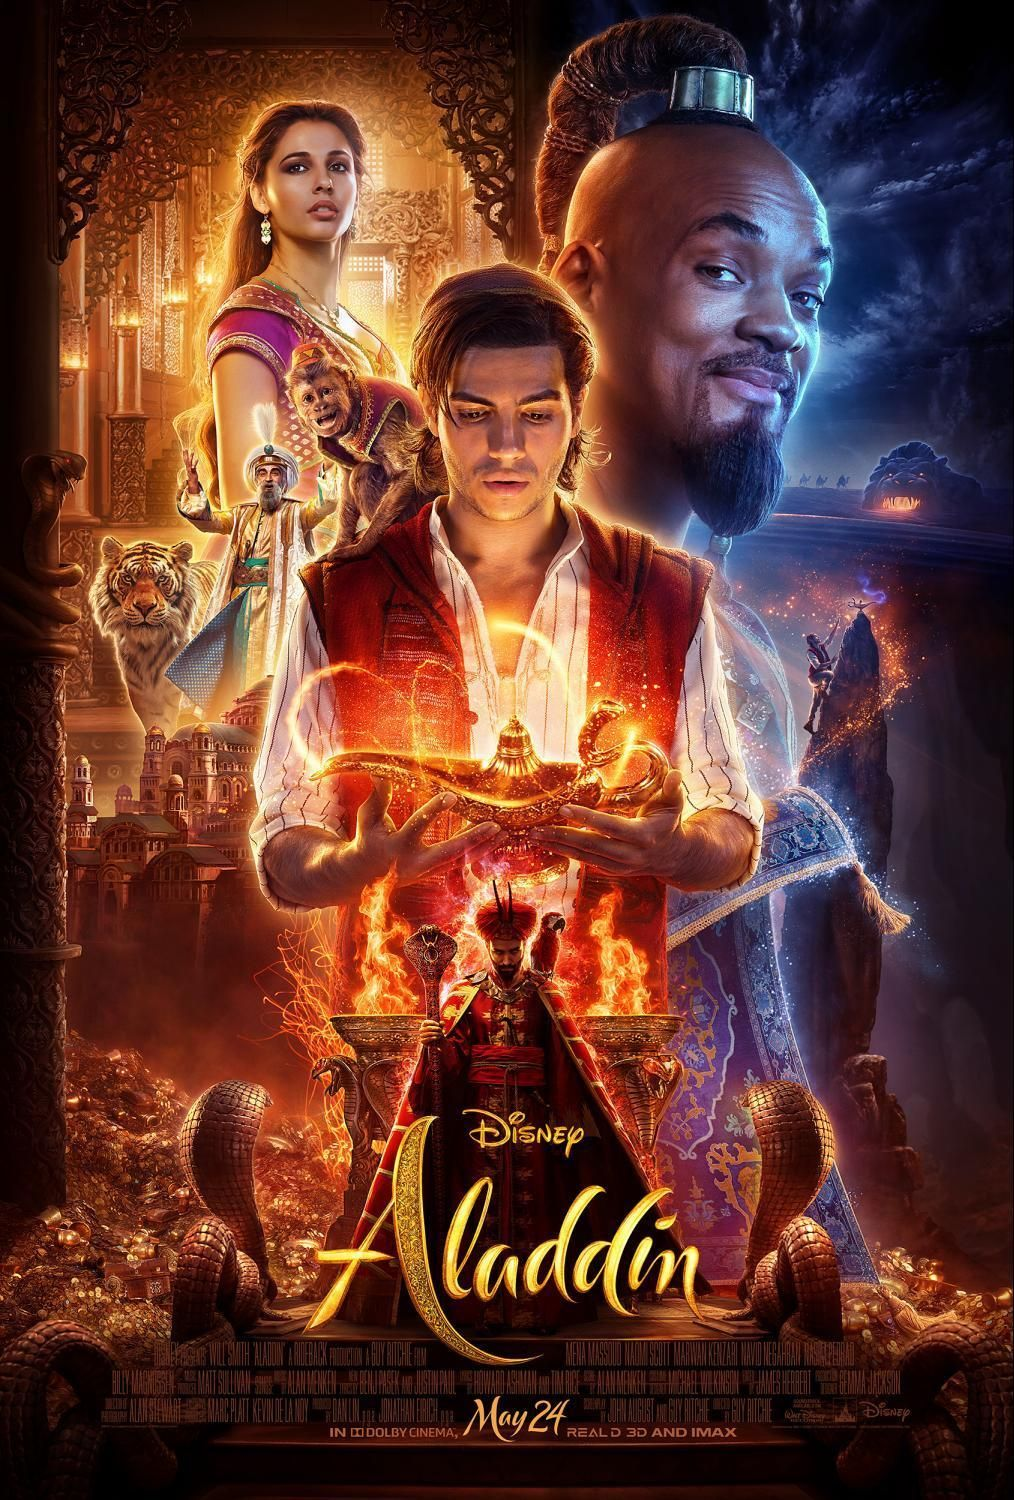 Aladdin is joining the ranks of Disney movies adapted to live action in 2019. Oh the gorgeousness! Will it be too scary for children? Tips to prepare your child.